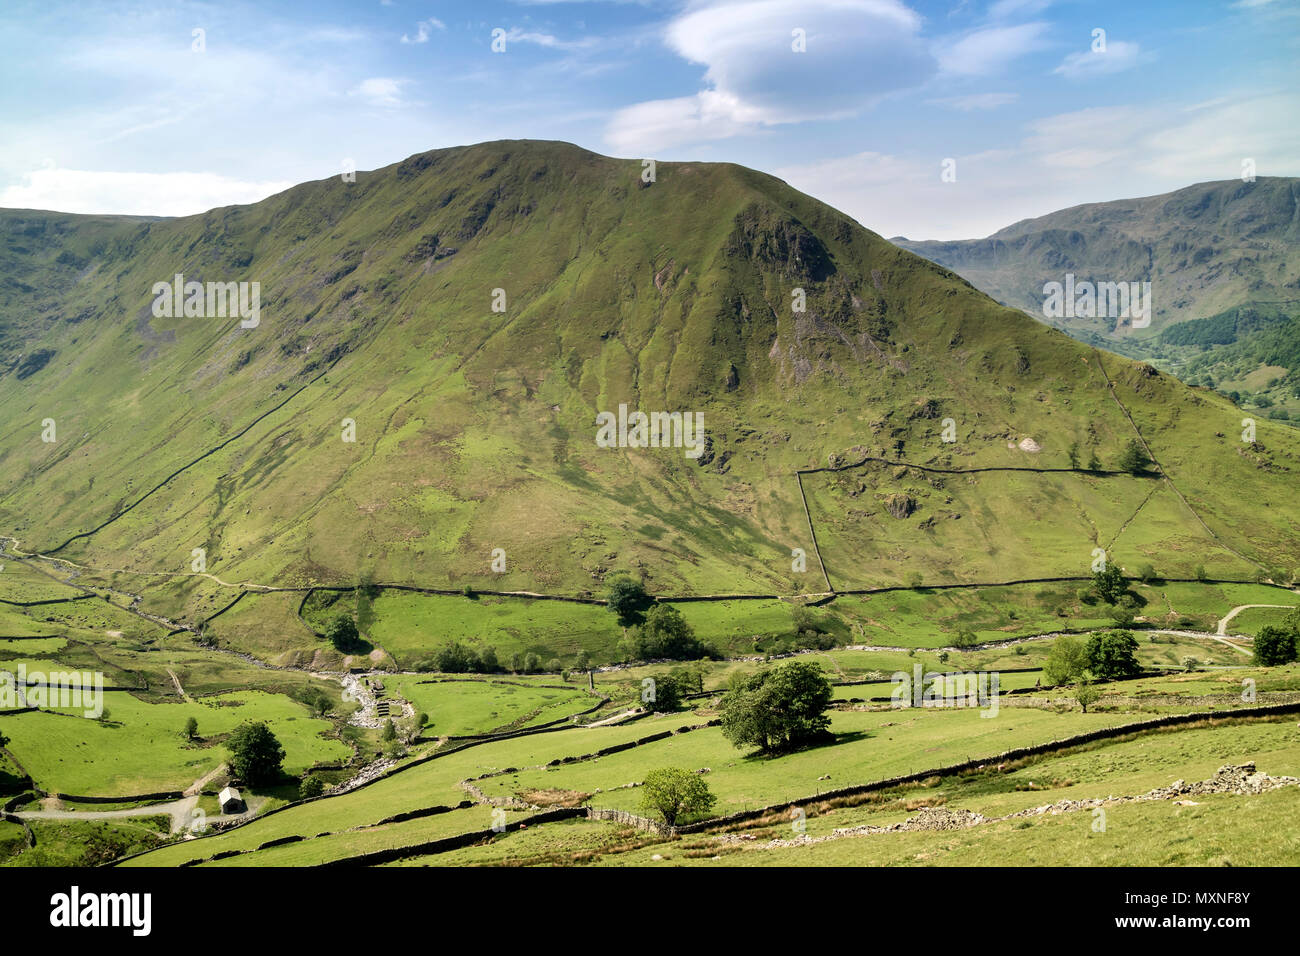 Hartsop Dodd from the Lower Slopes of Brock Crags, Lake District Cumbria, UK. - Stock Image